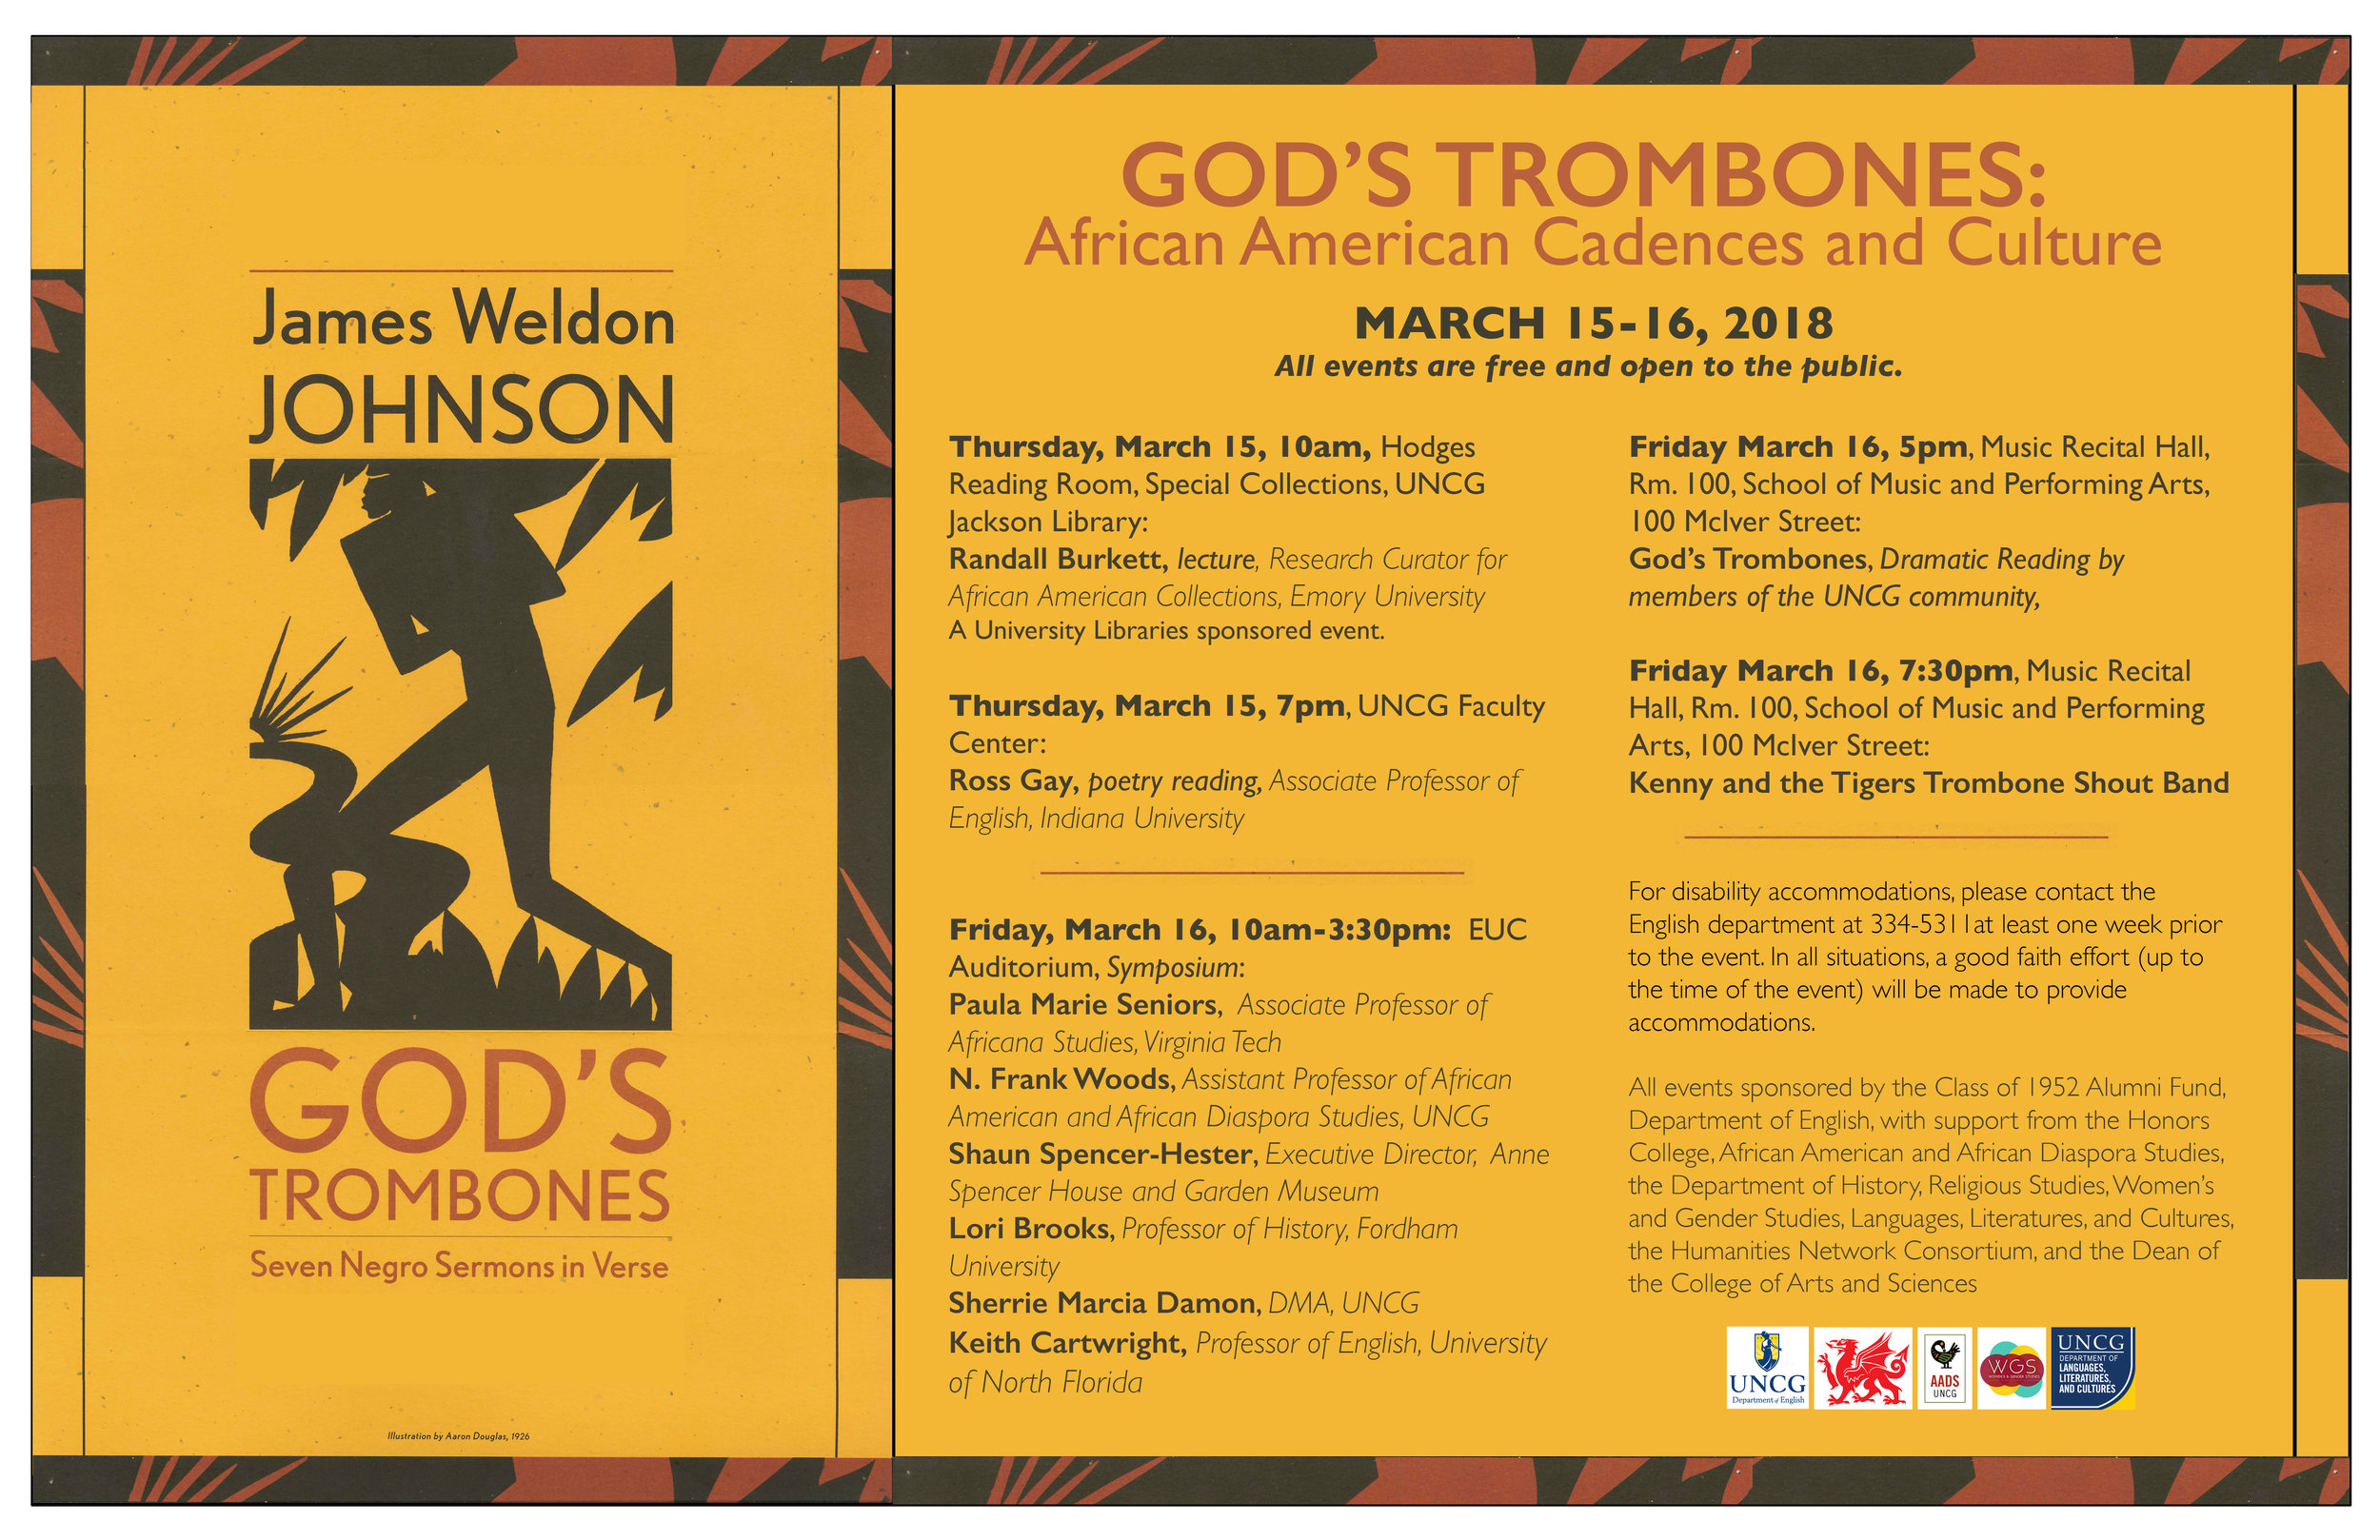 """EVENT:  """"God's Trombones: African American Cadences and Culture"""" Symposium, March 15-16, Open to the Public   My Talk:  """"Bleeding Moon,"""" Cole and Johnson's The Red Moon (1908-1910) and James Weldon Johnson's God's Trombones"""" Lecture Demonstration.  The beautiful singer Krystal, the pianist Esther Tinsort who played for """"Mama I Want To Sing,"""" and the finale Cakewalk Dance done by Daliana Dance Company   Date:  Friday March 16, 2018   Time:  10 Am   Place:  EUC Auditorium, UNC Greensboro, North Carolina   Reception:  9:30 AM"""